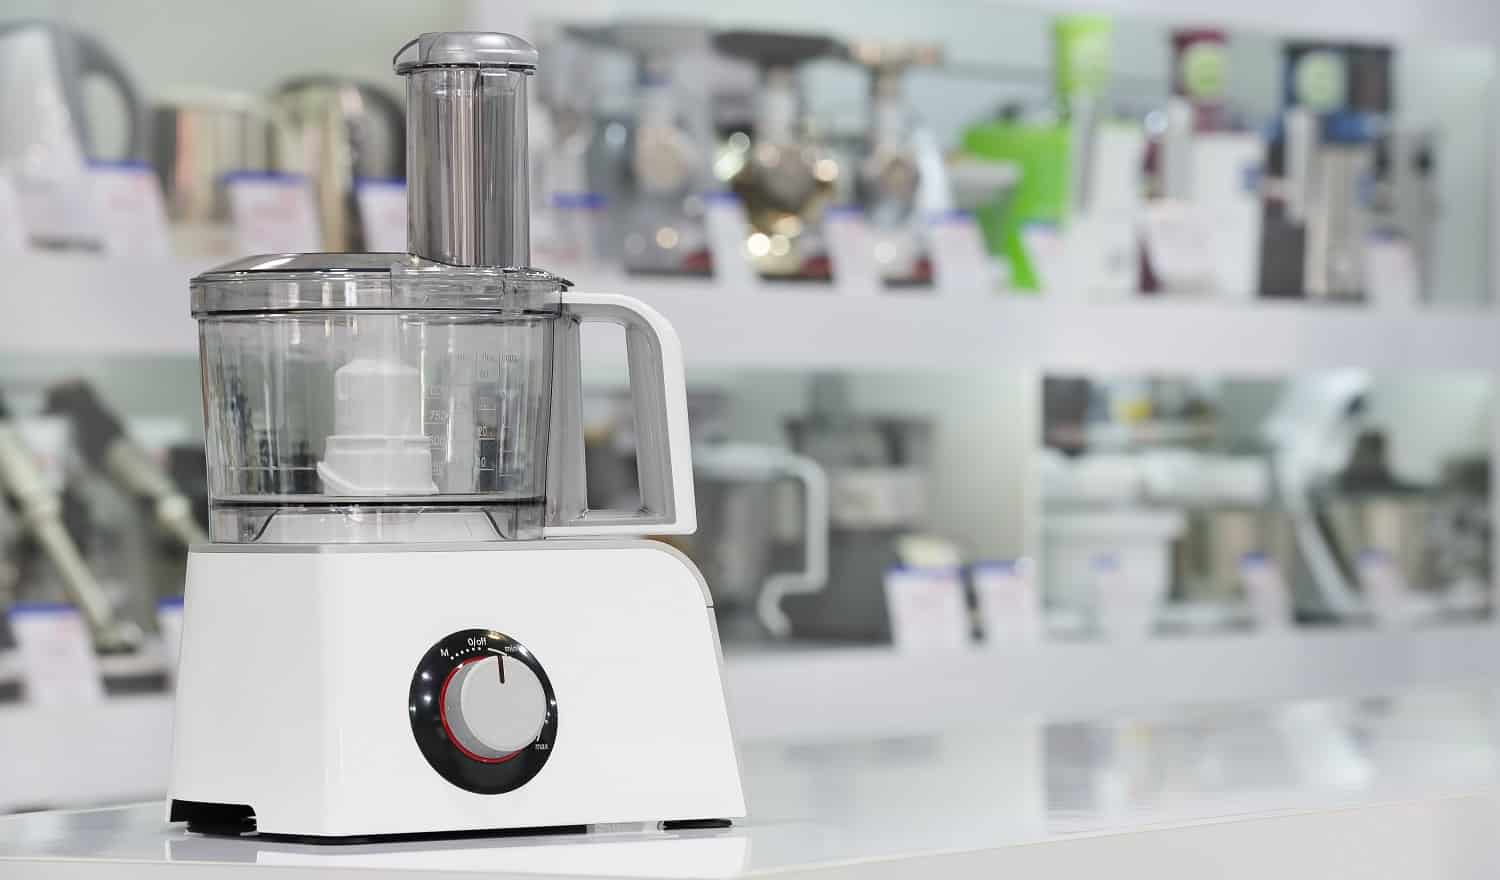 11 Best Food Processors For Nut Butter Architecture Design Competitions Aggregator